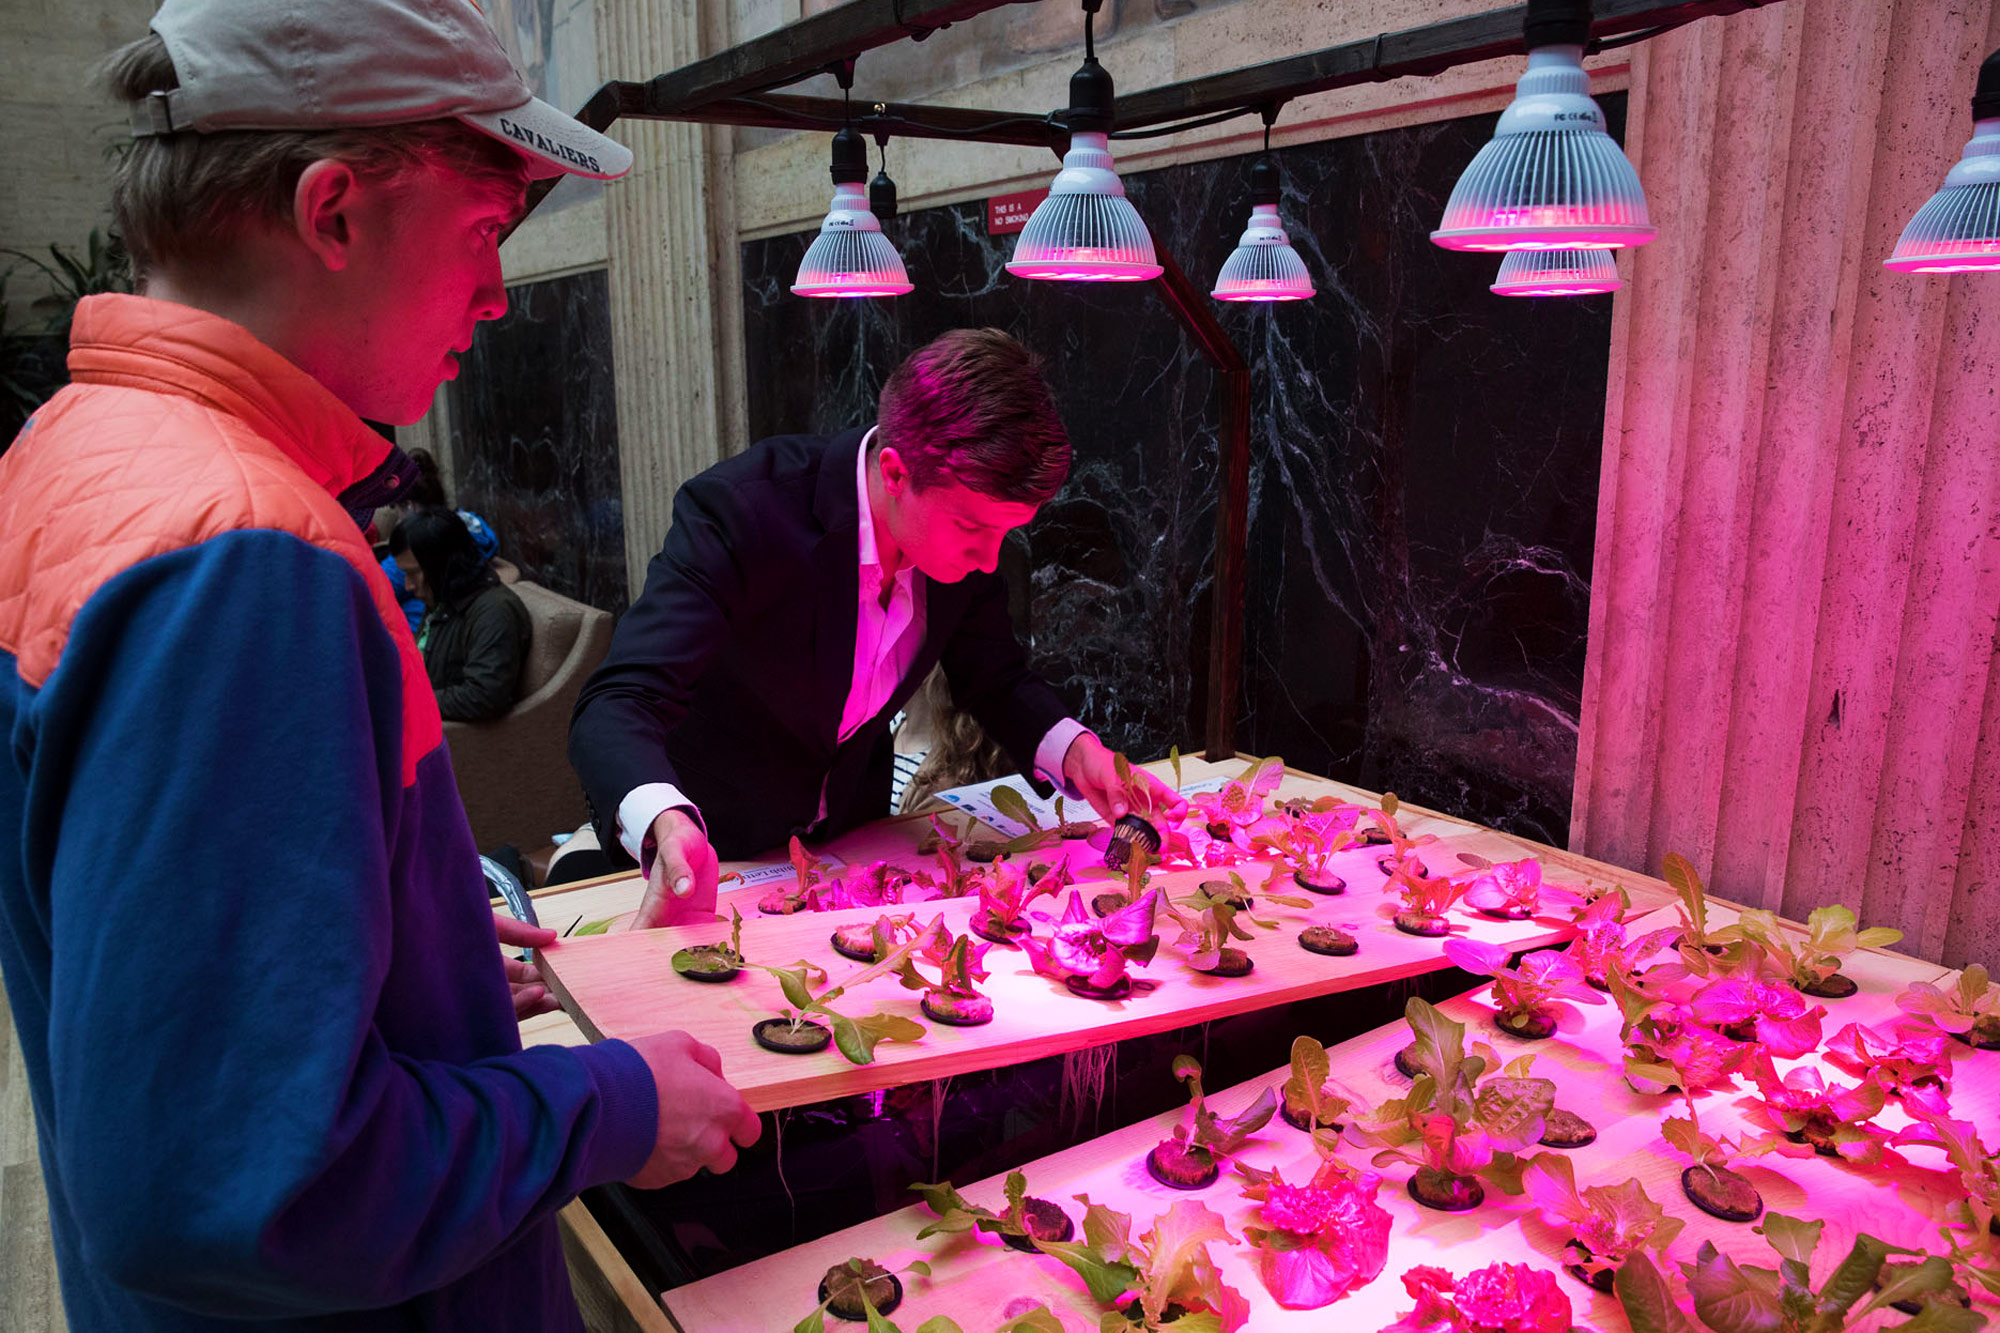 Alexander Olesen, founder of Babylon Micro-Farms, hopes that his hydroponic systems will soon be put to use in UVA dining halls and low-income areas. (Photo by Dan Addison, University Communications)